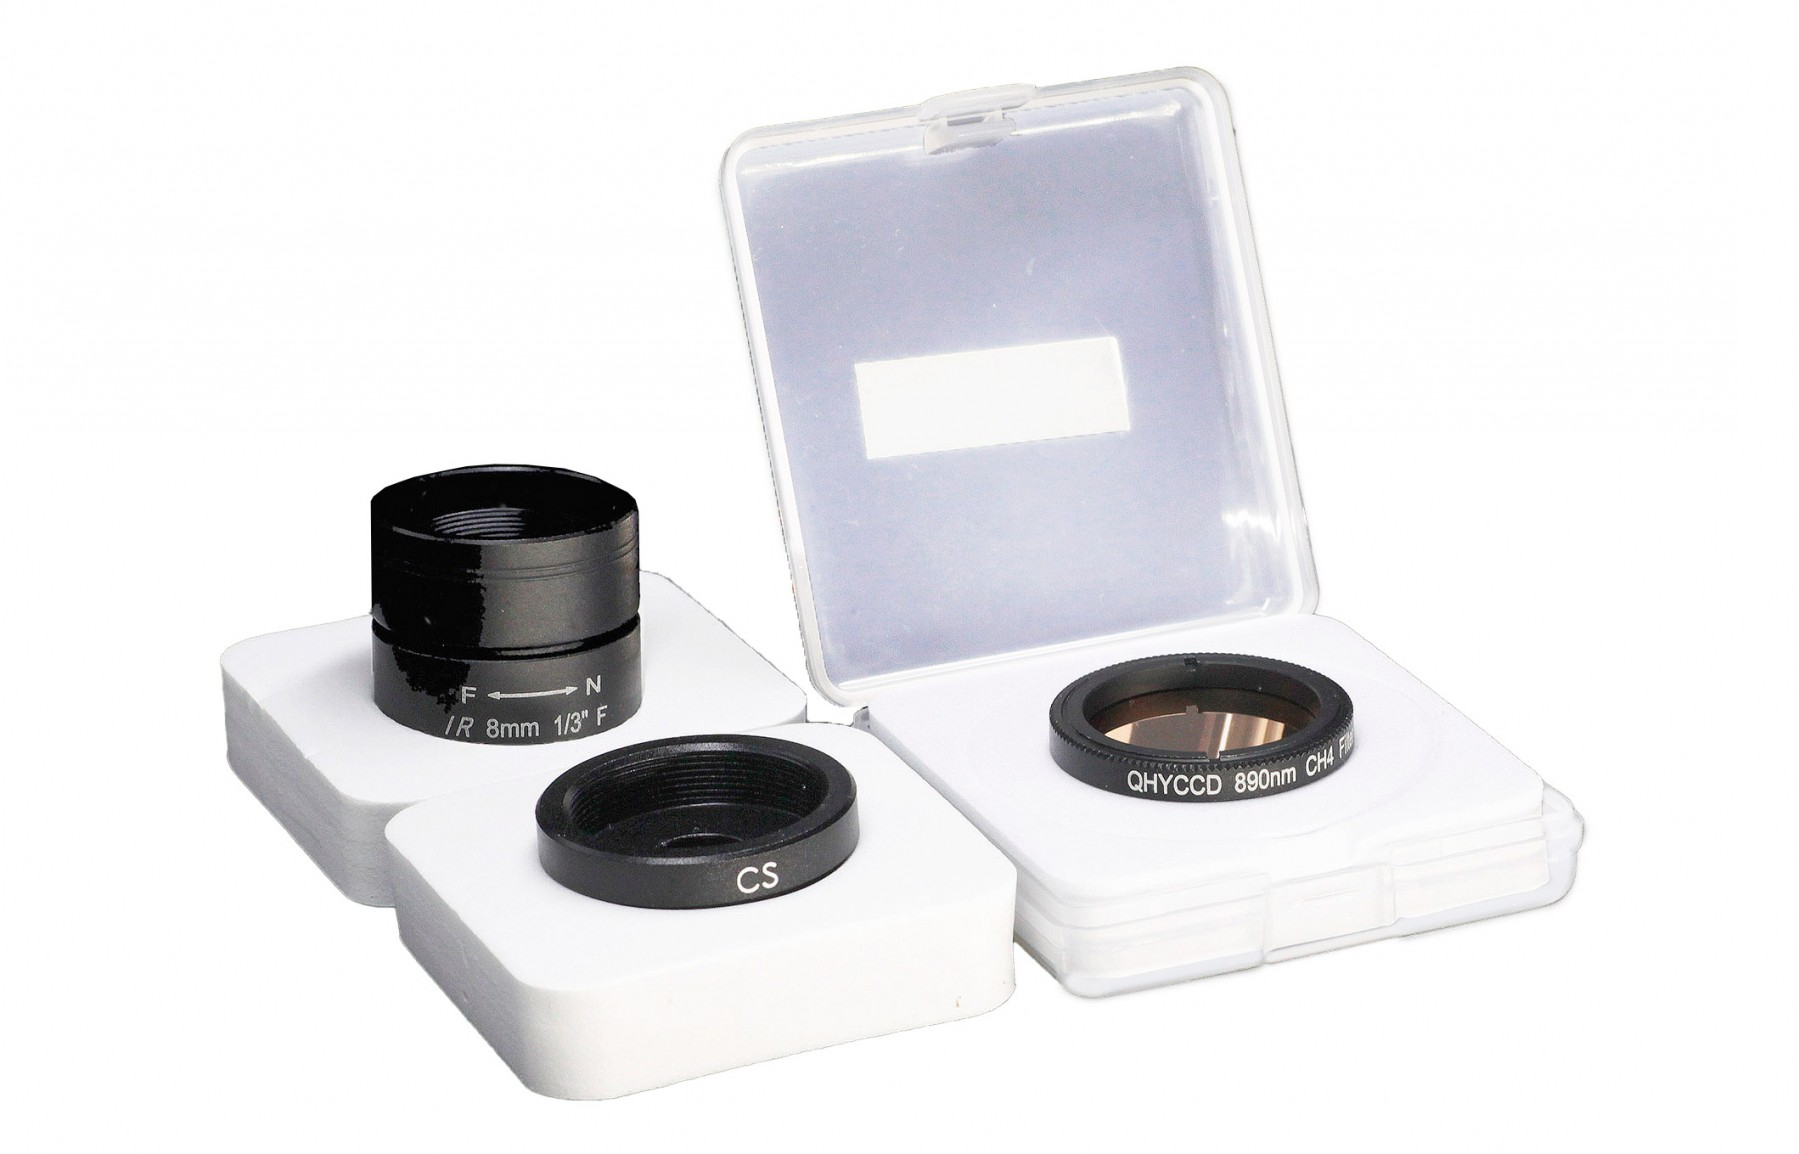 """Expansion Kit für QHY-5-III-462C: 1¼ Zoll Methanbandfilter (890nm), Weitwinkel """"All Sky Objektiv"""", CS-Mount Adapter"""